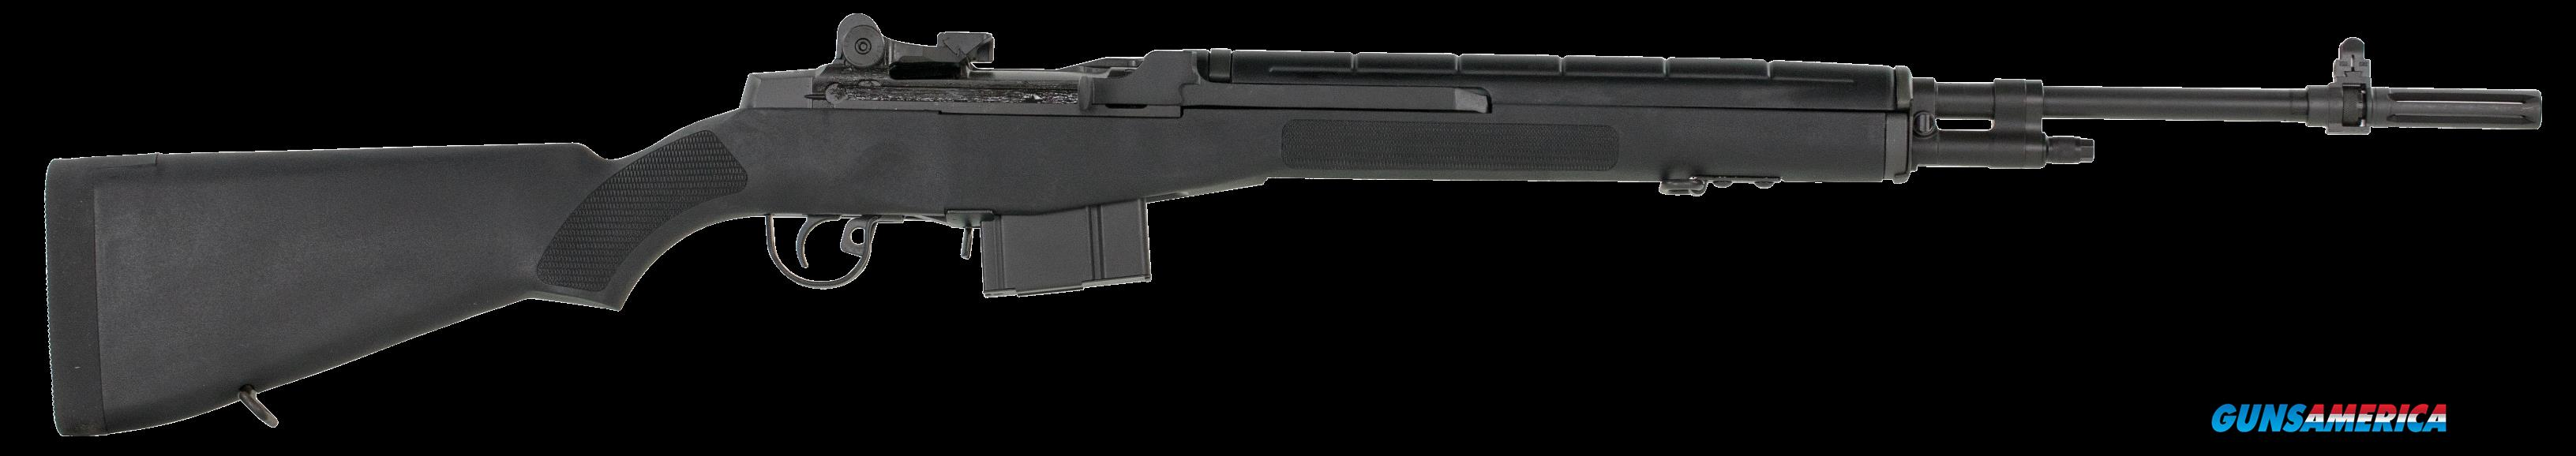 Springfield Armory M1a, Spg Ma9226      M1a Std      308 Syn Bl Loaded  Guns > Pistols > 1911 Pistol Copies (non-Colt)